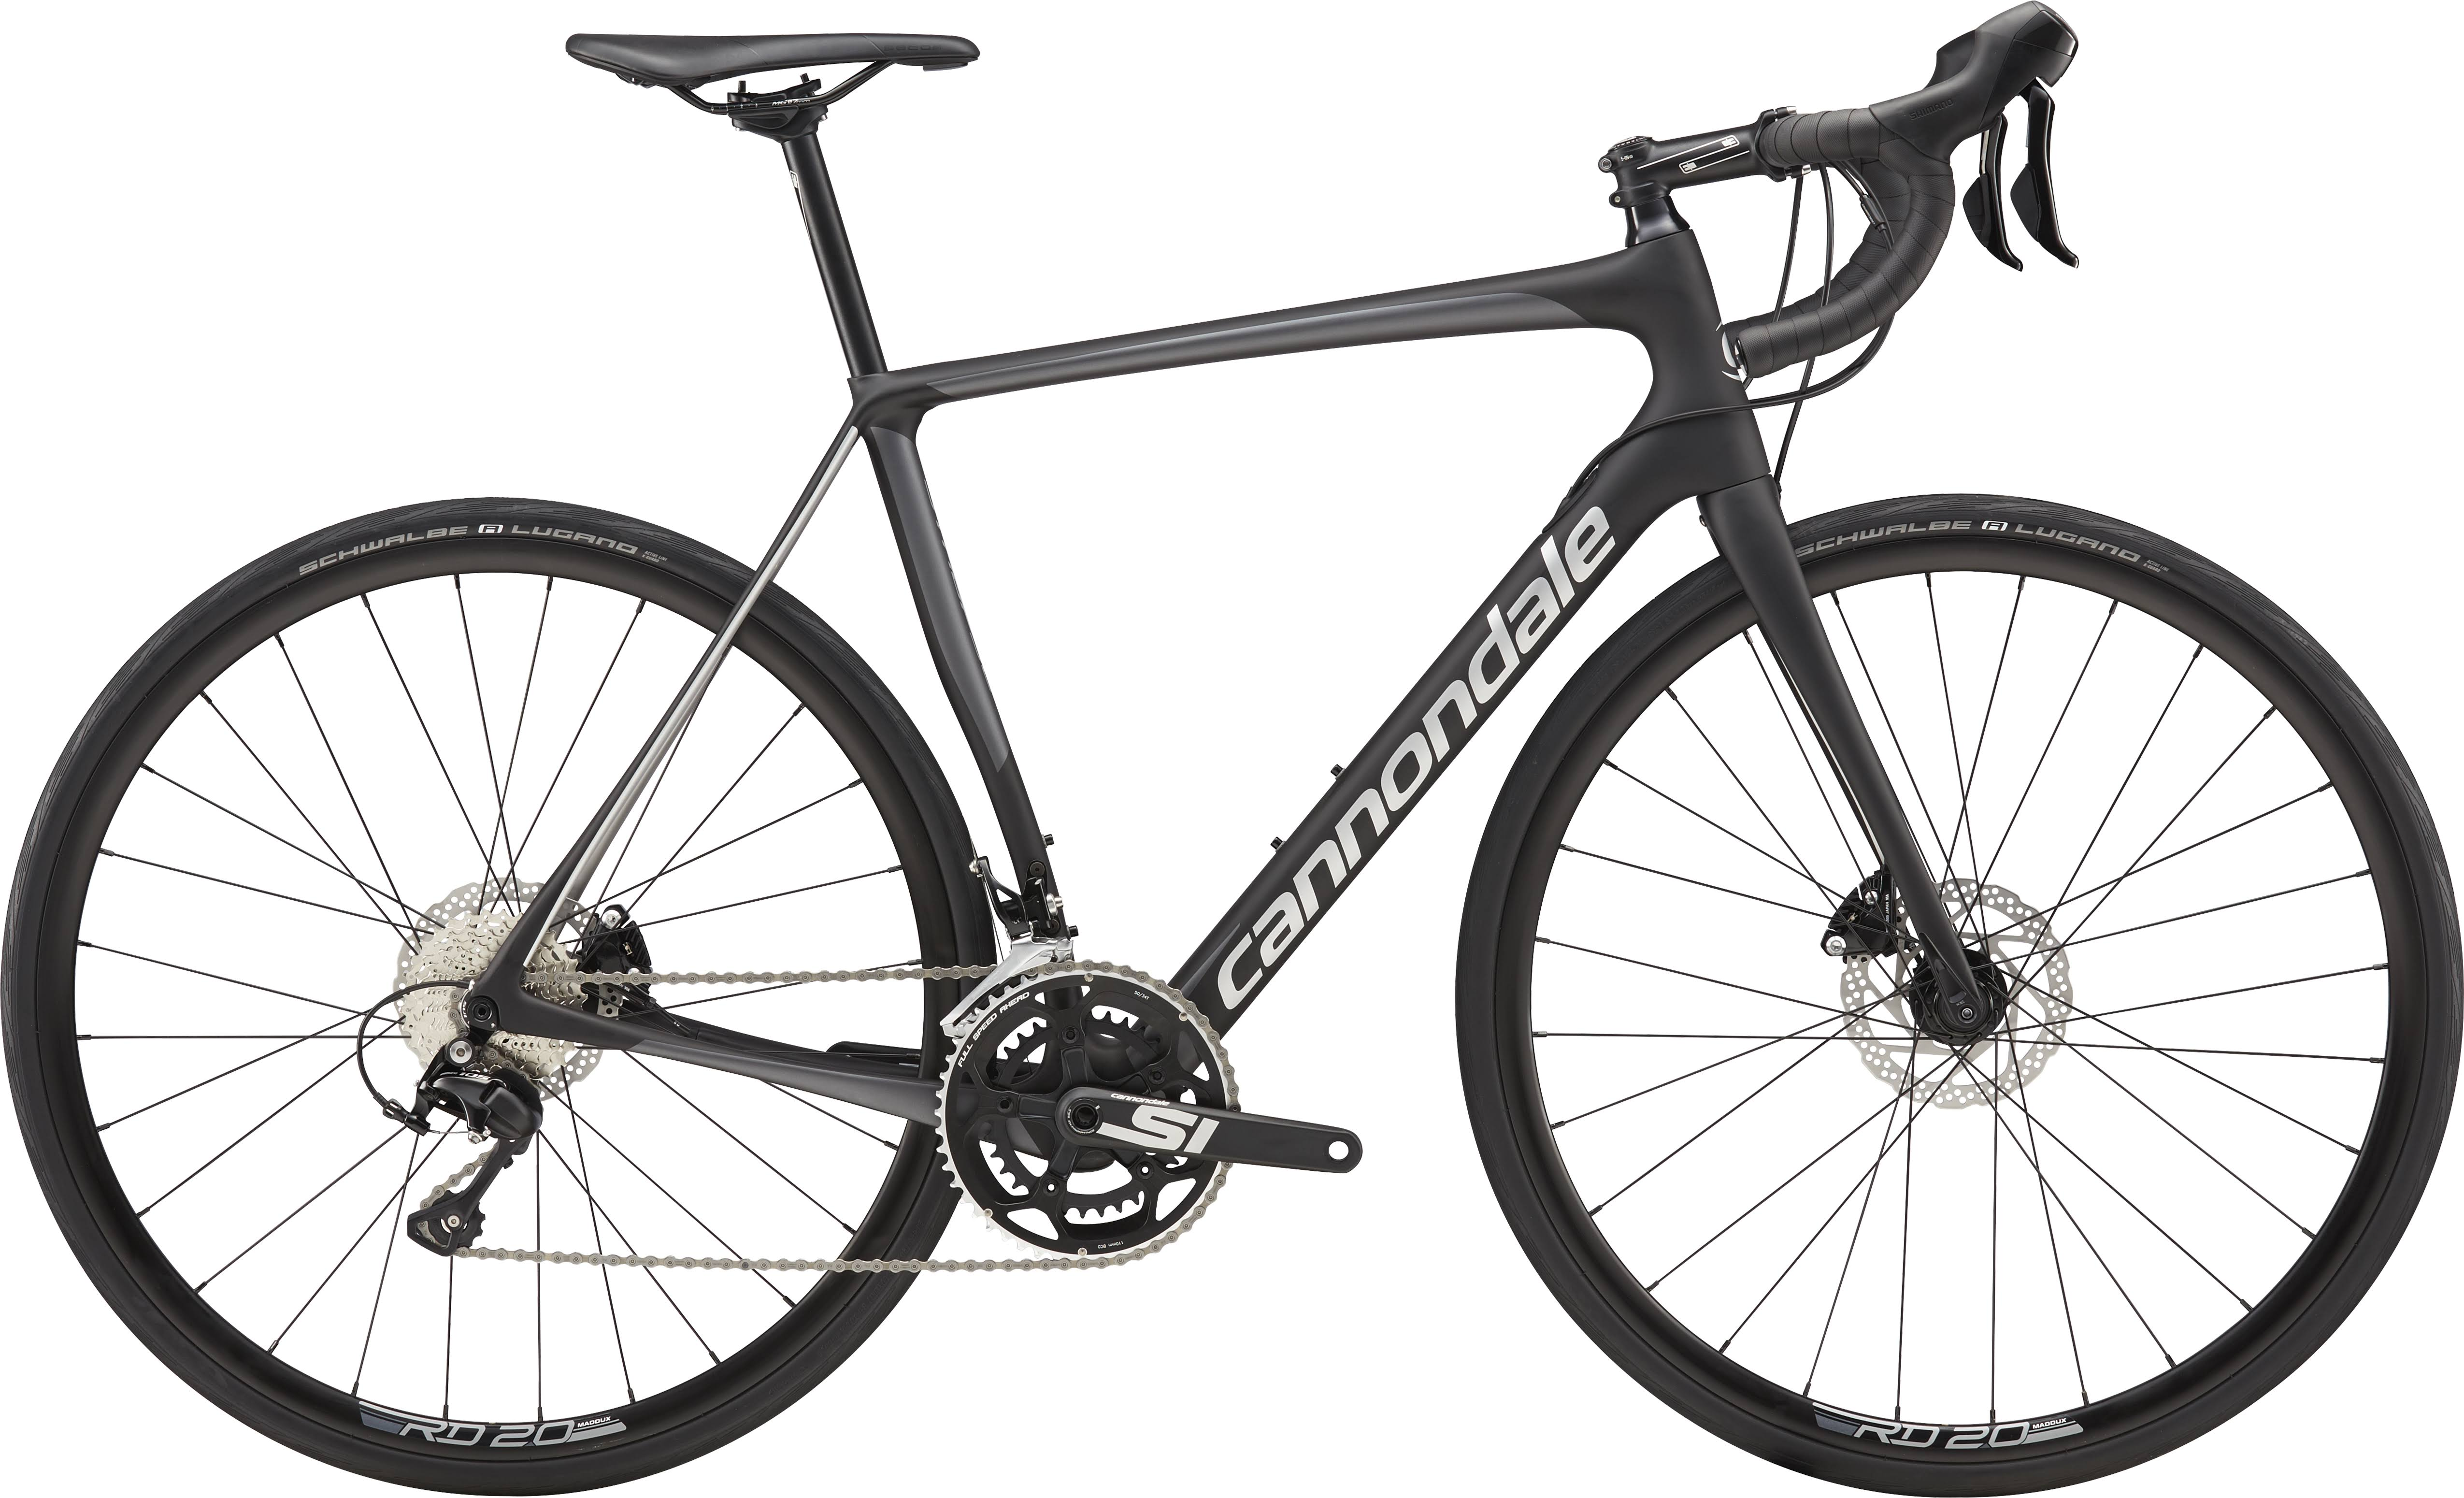 Cannondale Synapse Carbon Disc 105 Road Bike - Black